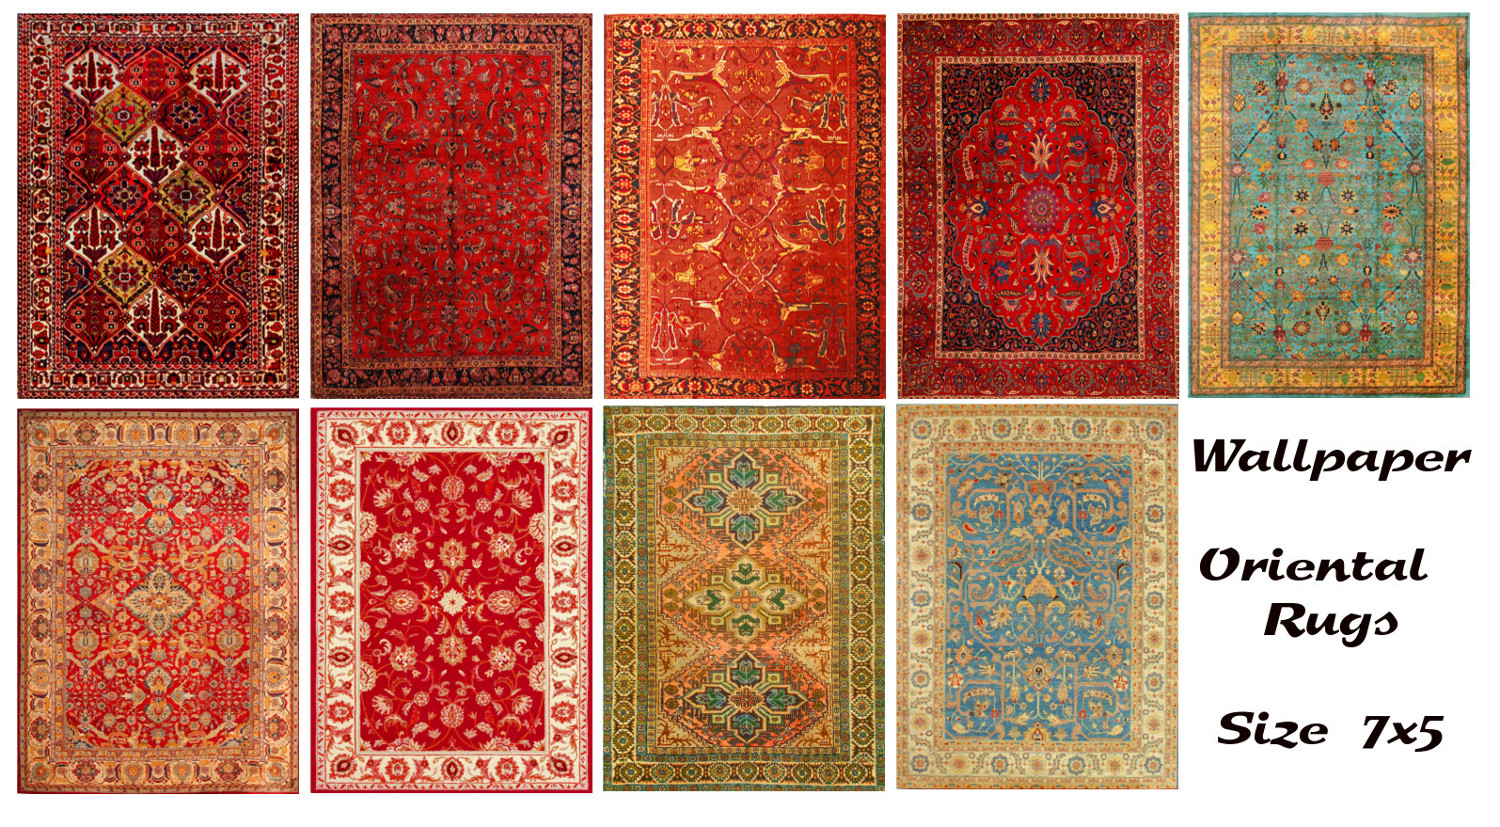 Mod The Sims Oriental Rugs Size 7x5